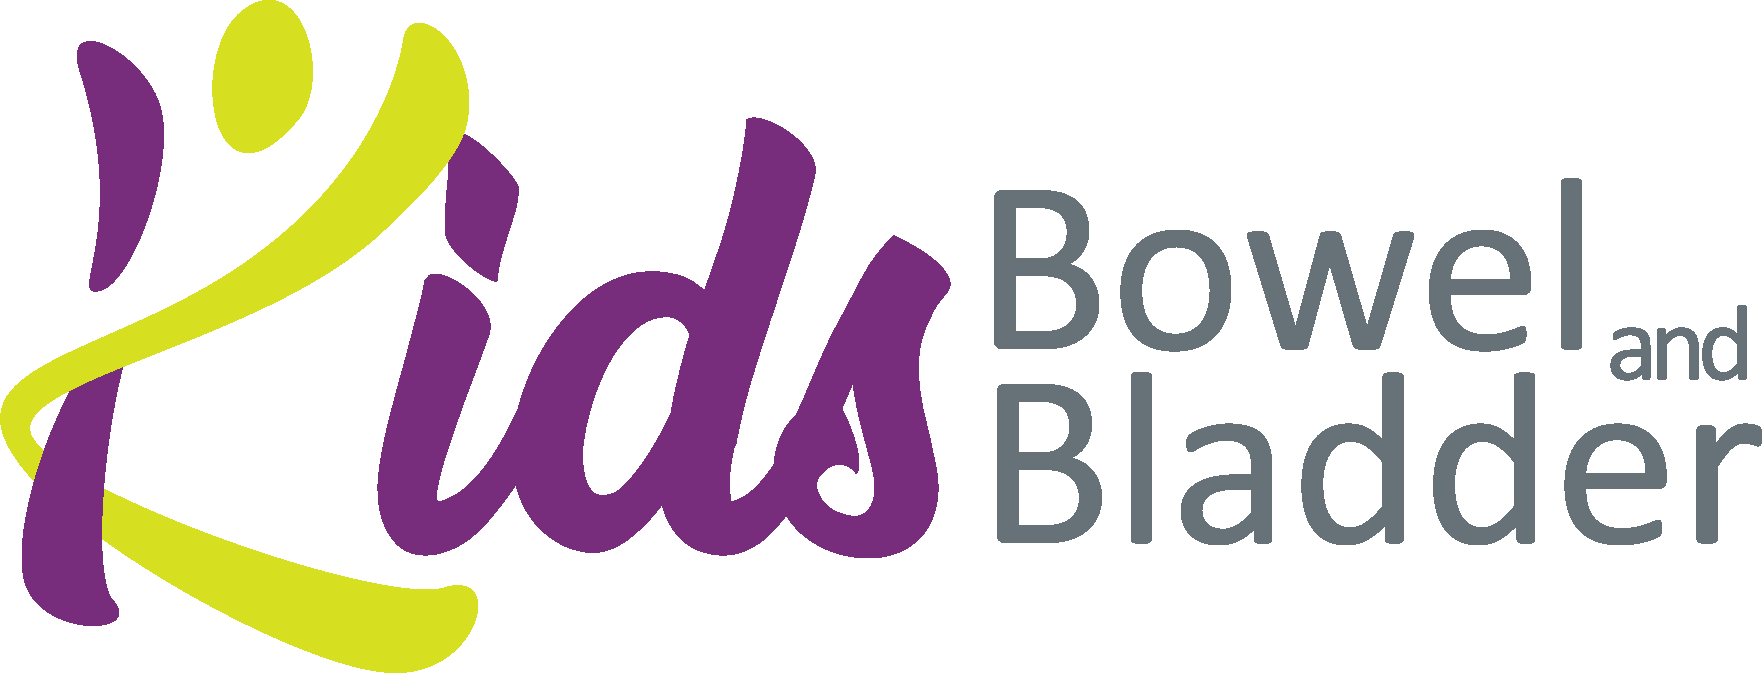 Kids Bowel Bladder Logo